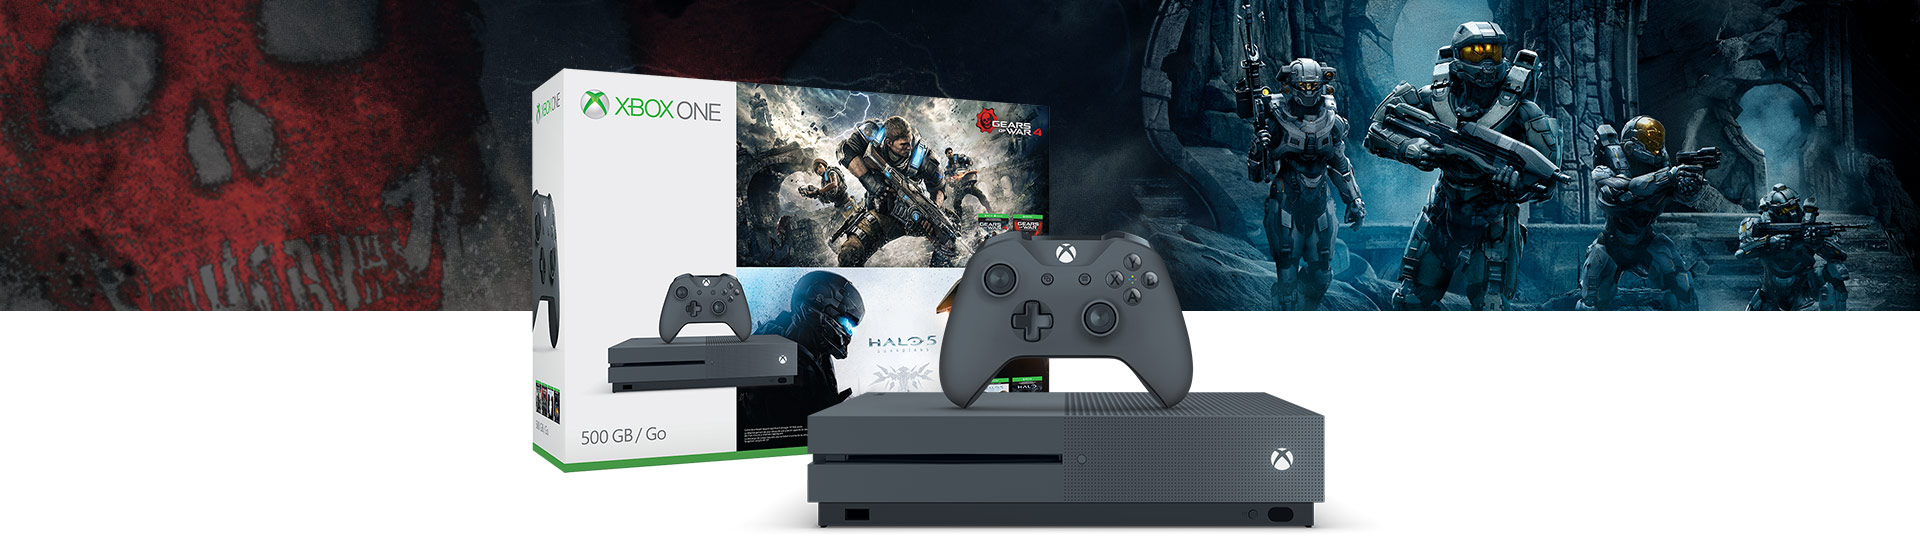 Xbox One S Gears of War and Halo Special Edition Bundle (500 GB)